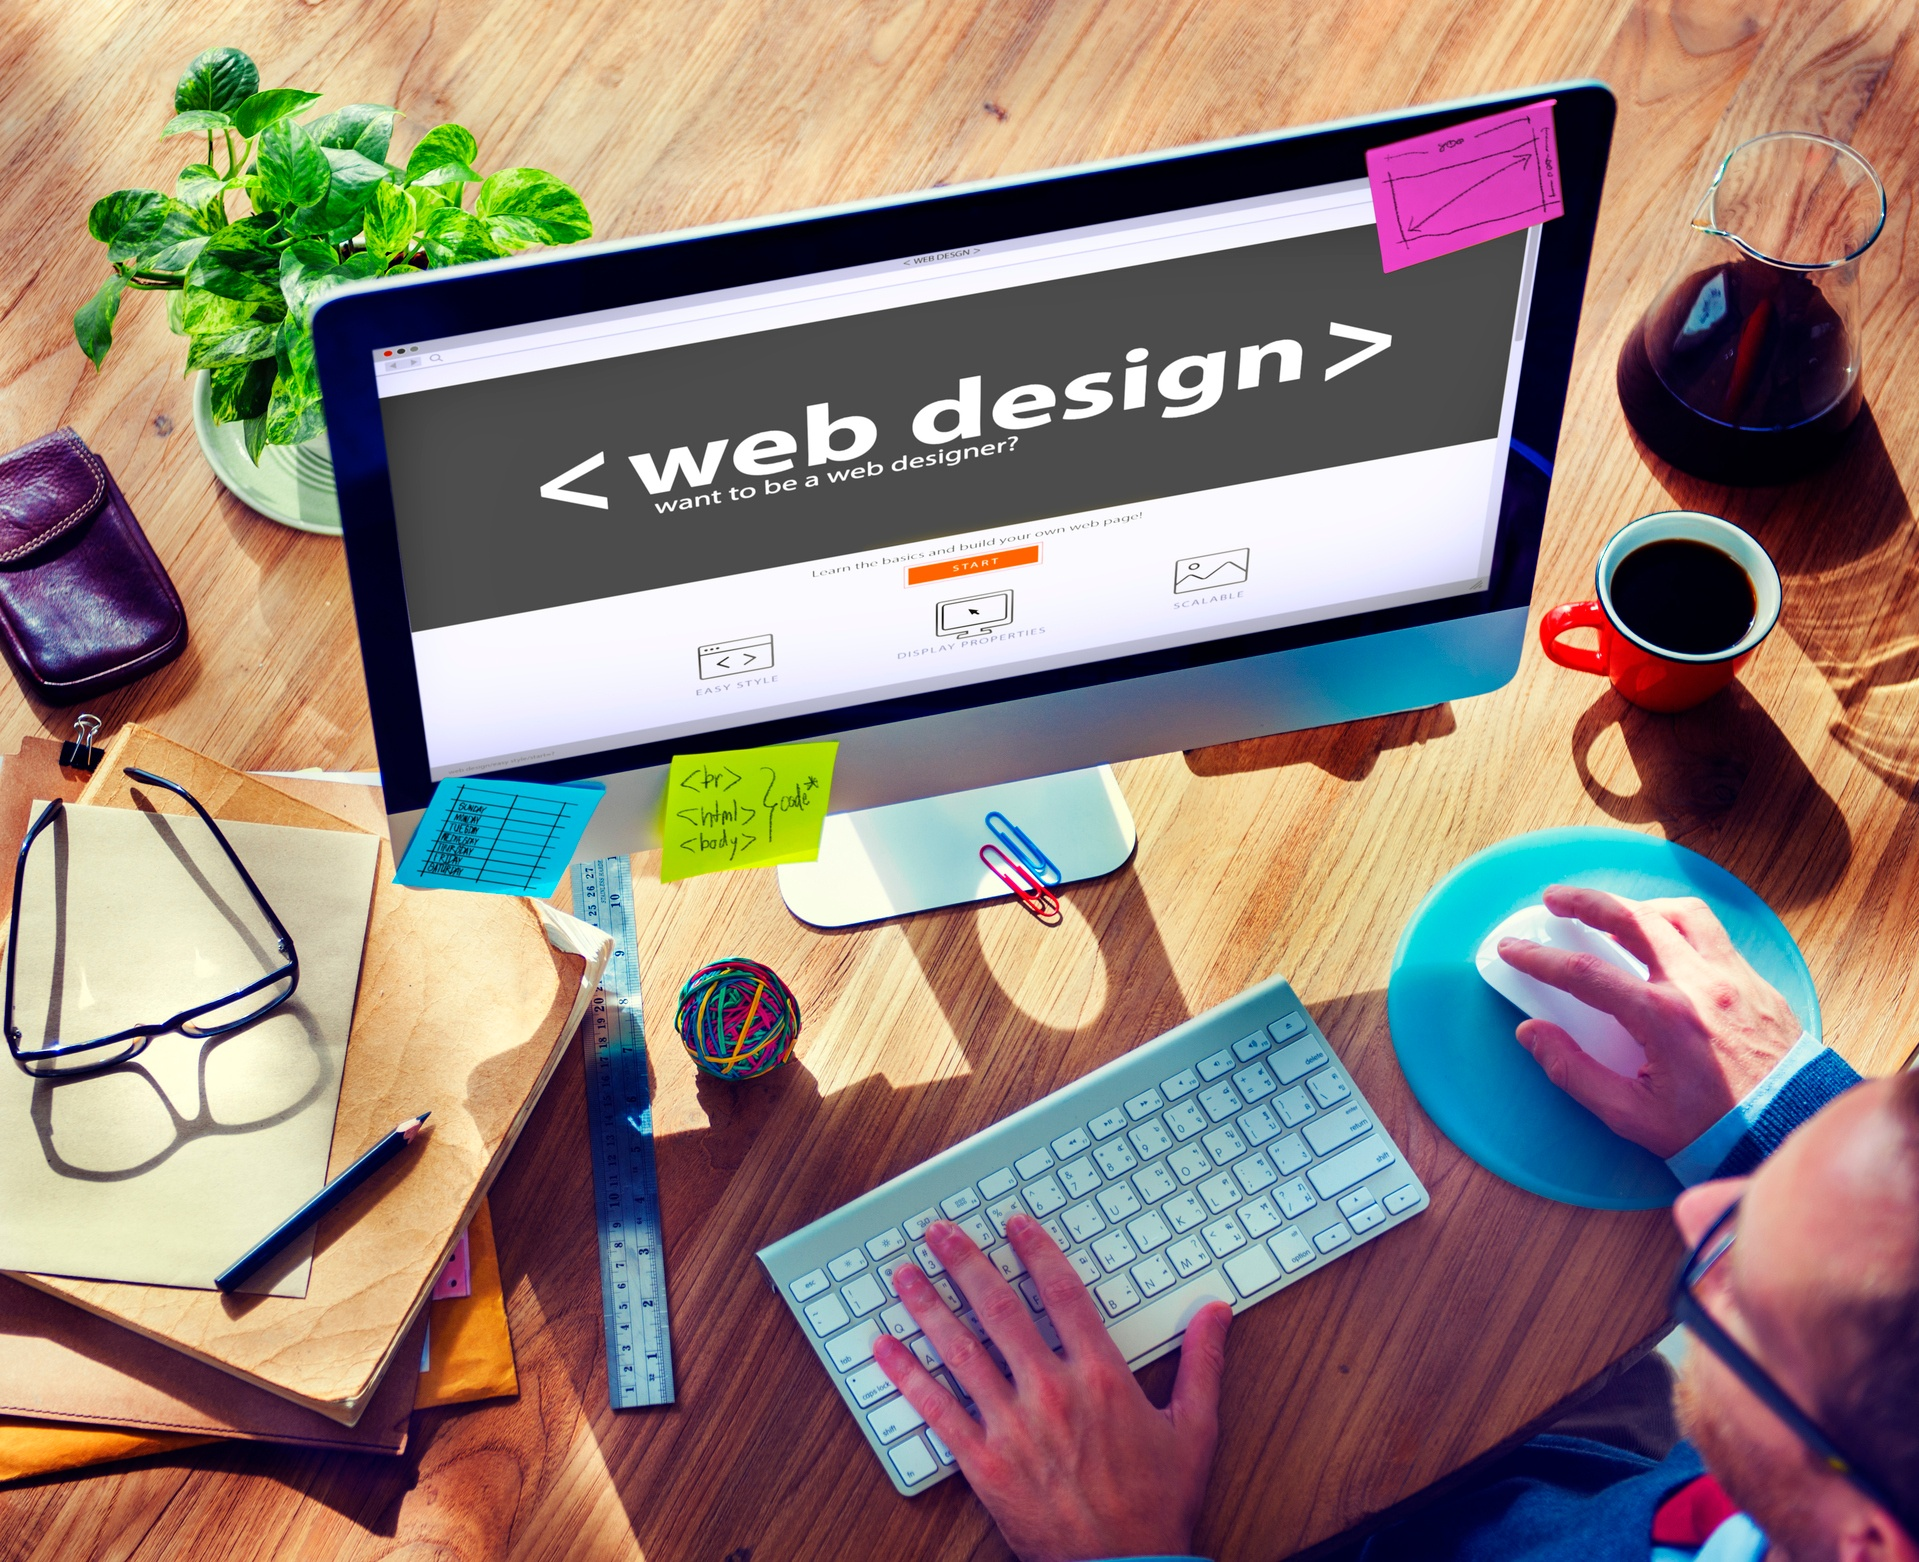 3-perfect-online-tools-to-make-web-design-easier.jpg